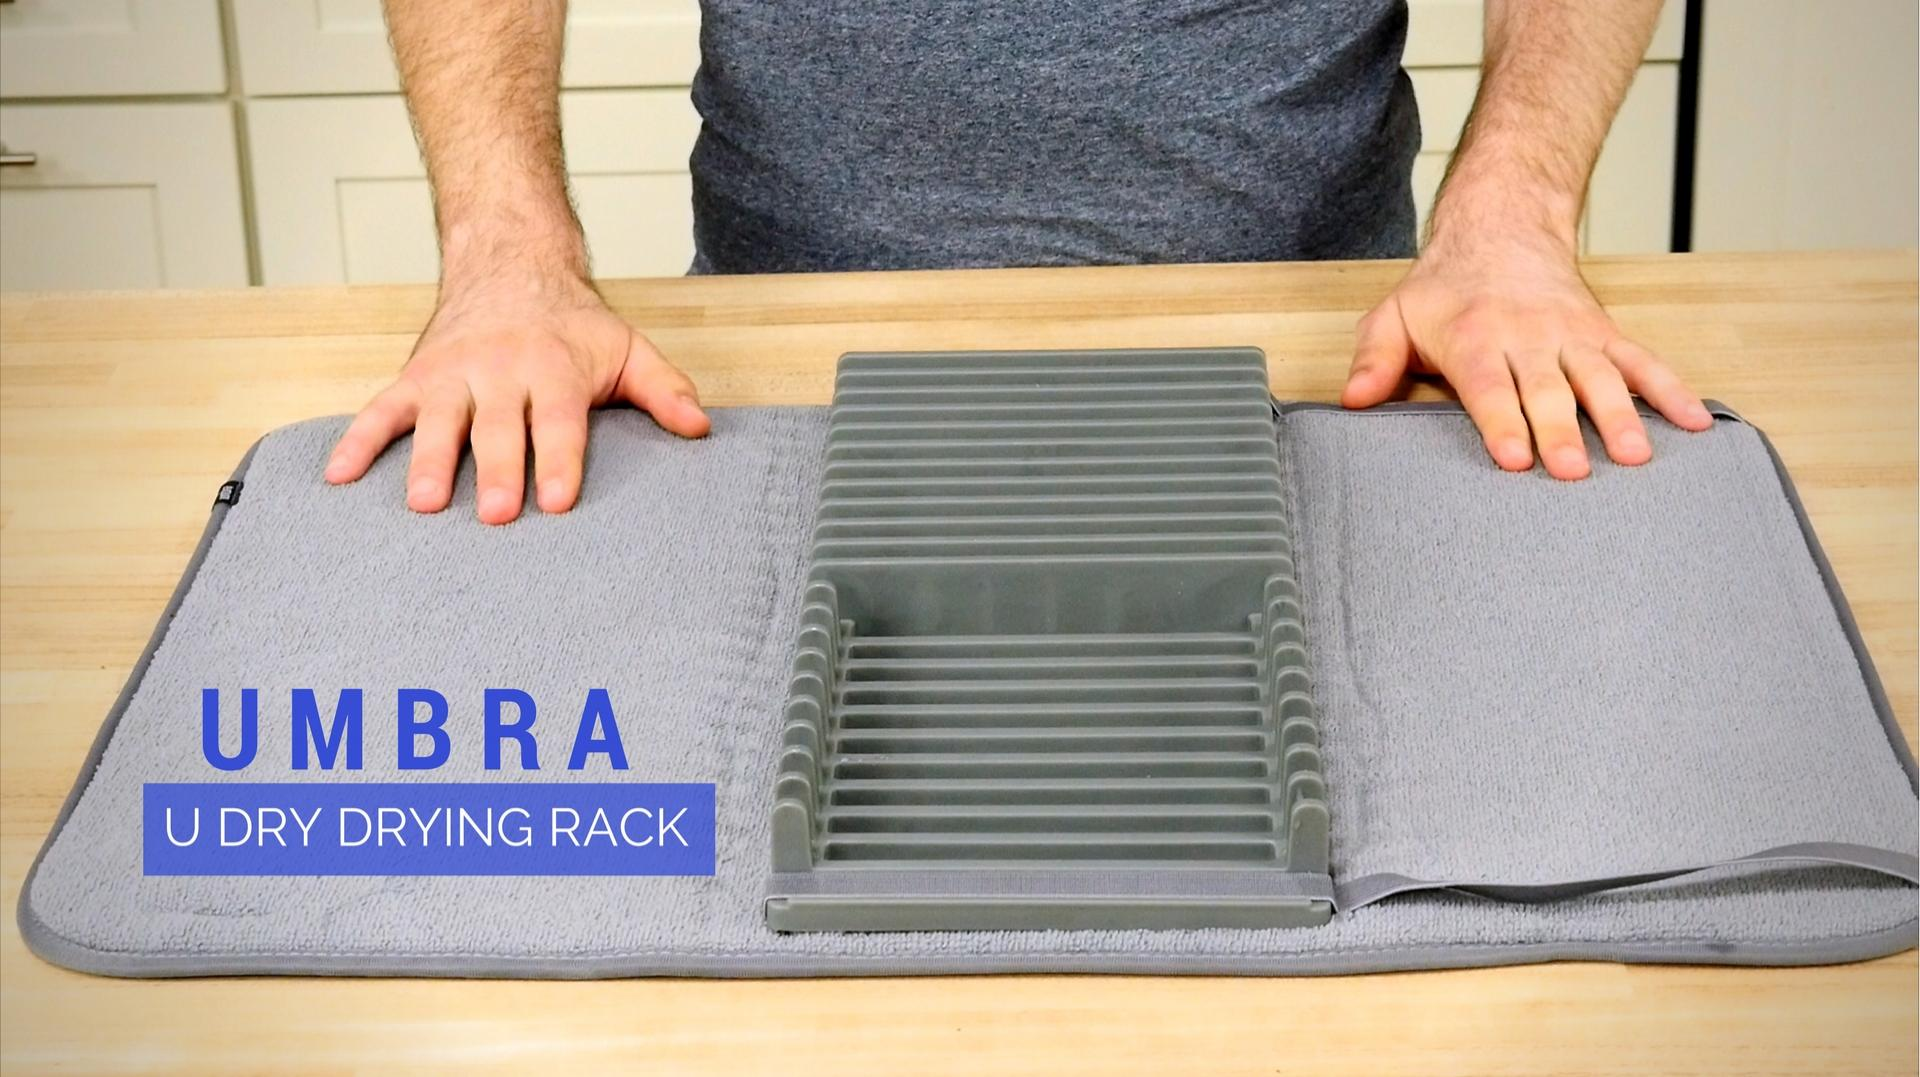 Umbra U Dry Drying Rack